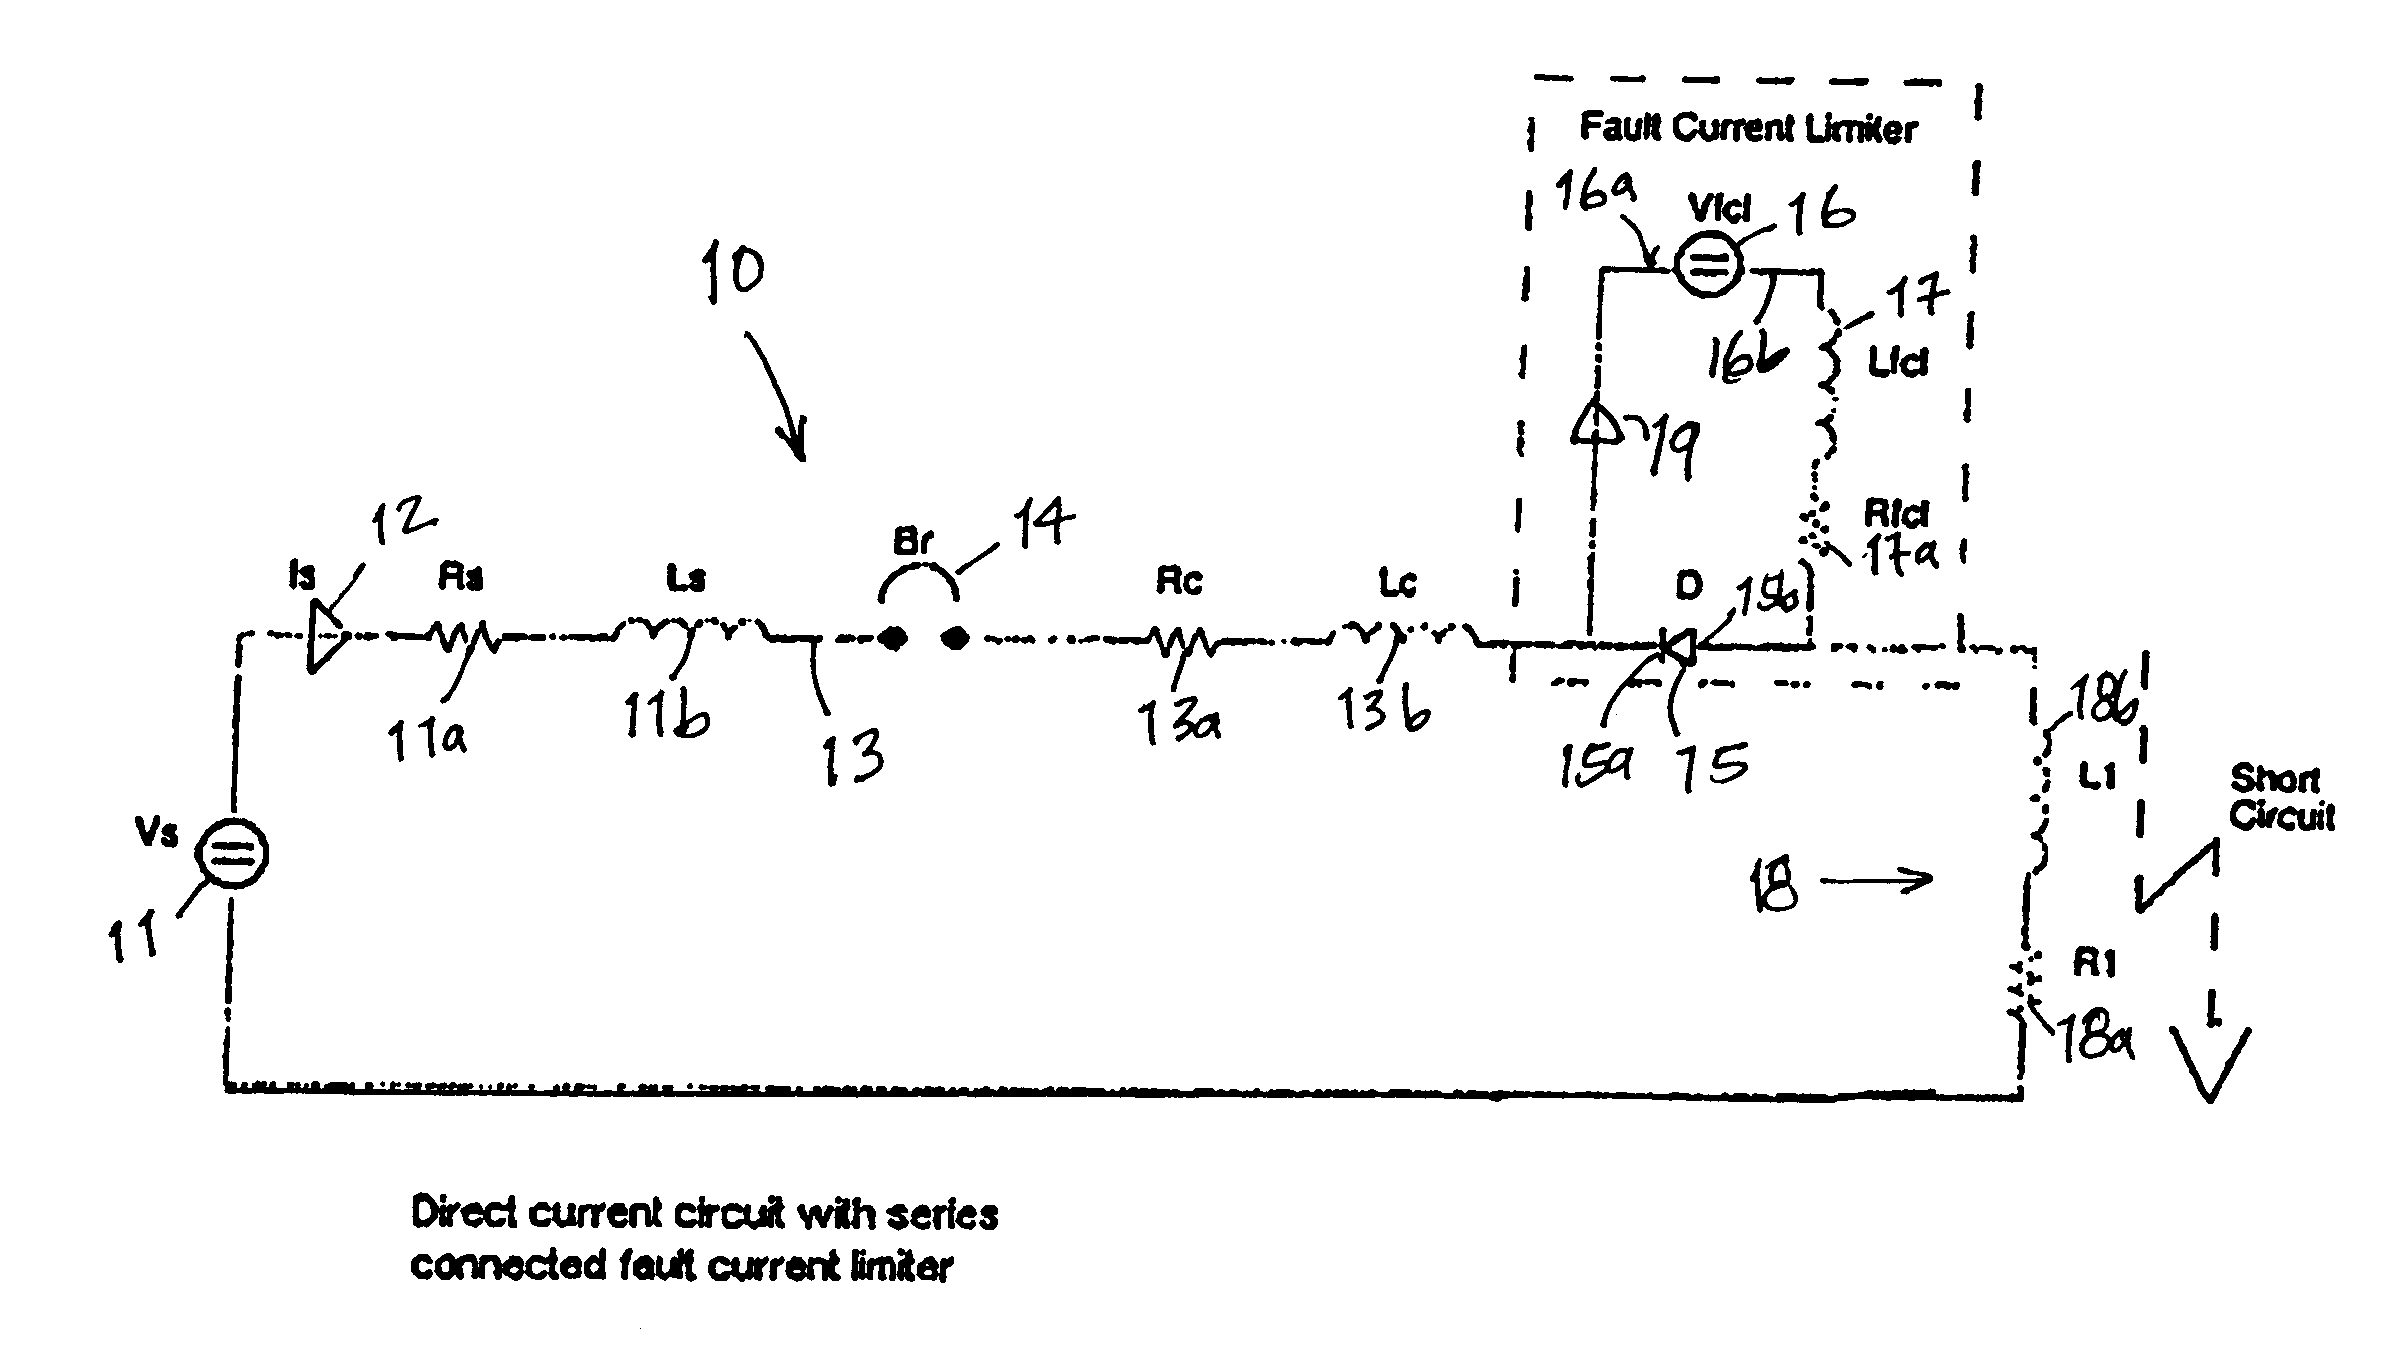 patent us6624993 - adjustable direct current and pulsed circuit fault current limiter